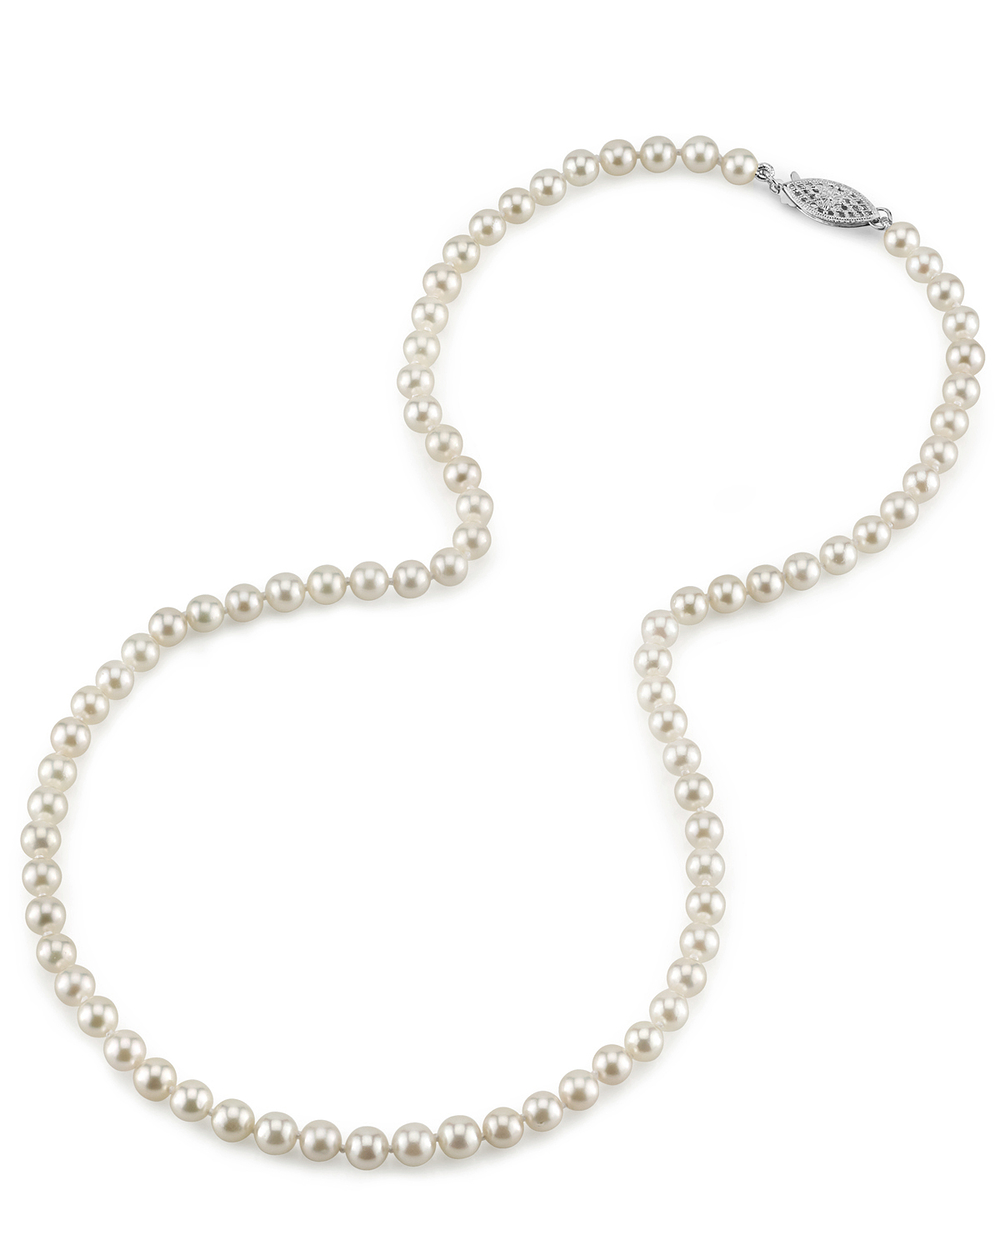 5.0-5.5mm Japanese Akoya White Pearl Necklace - AAA Quality